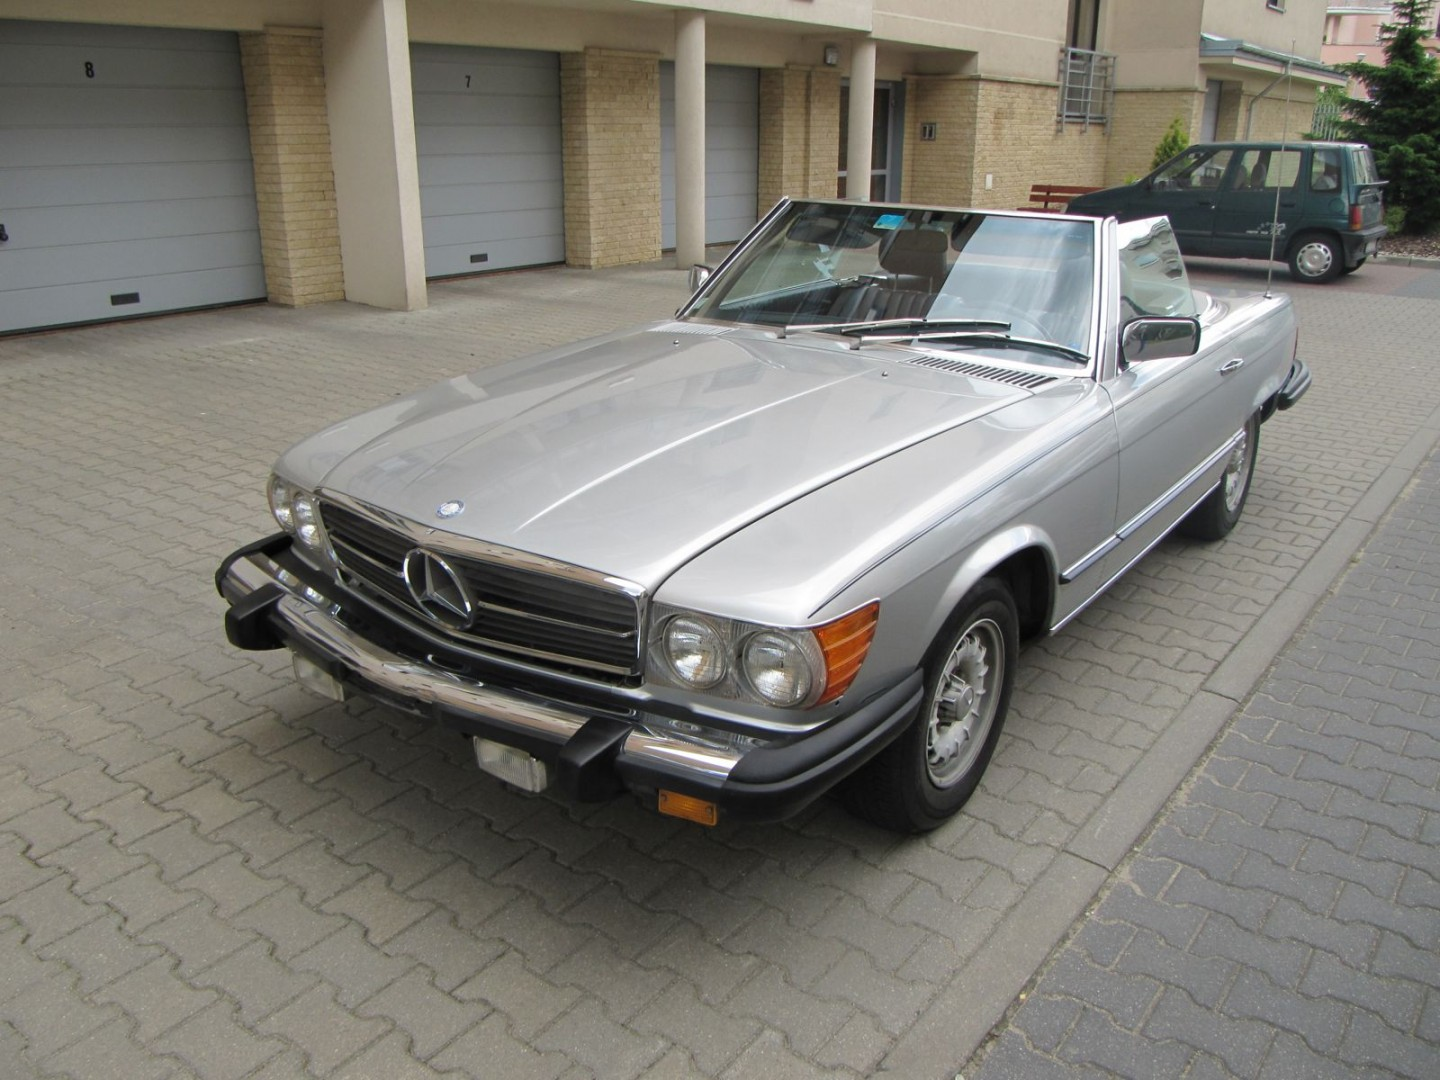 Mercedes 380SL 1983 - MBB Collection